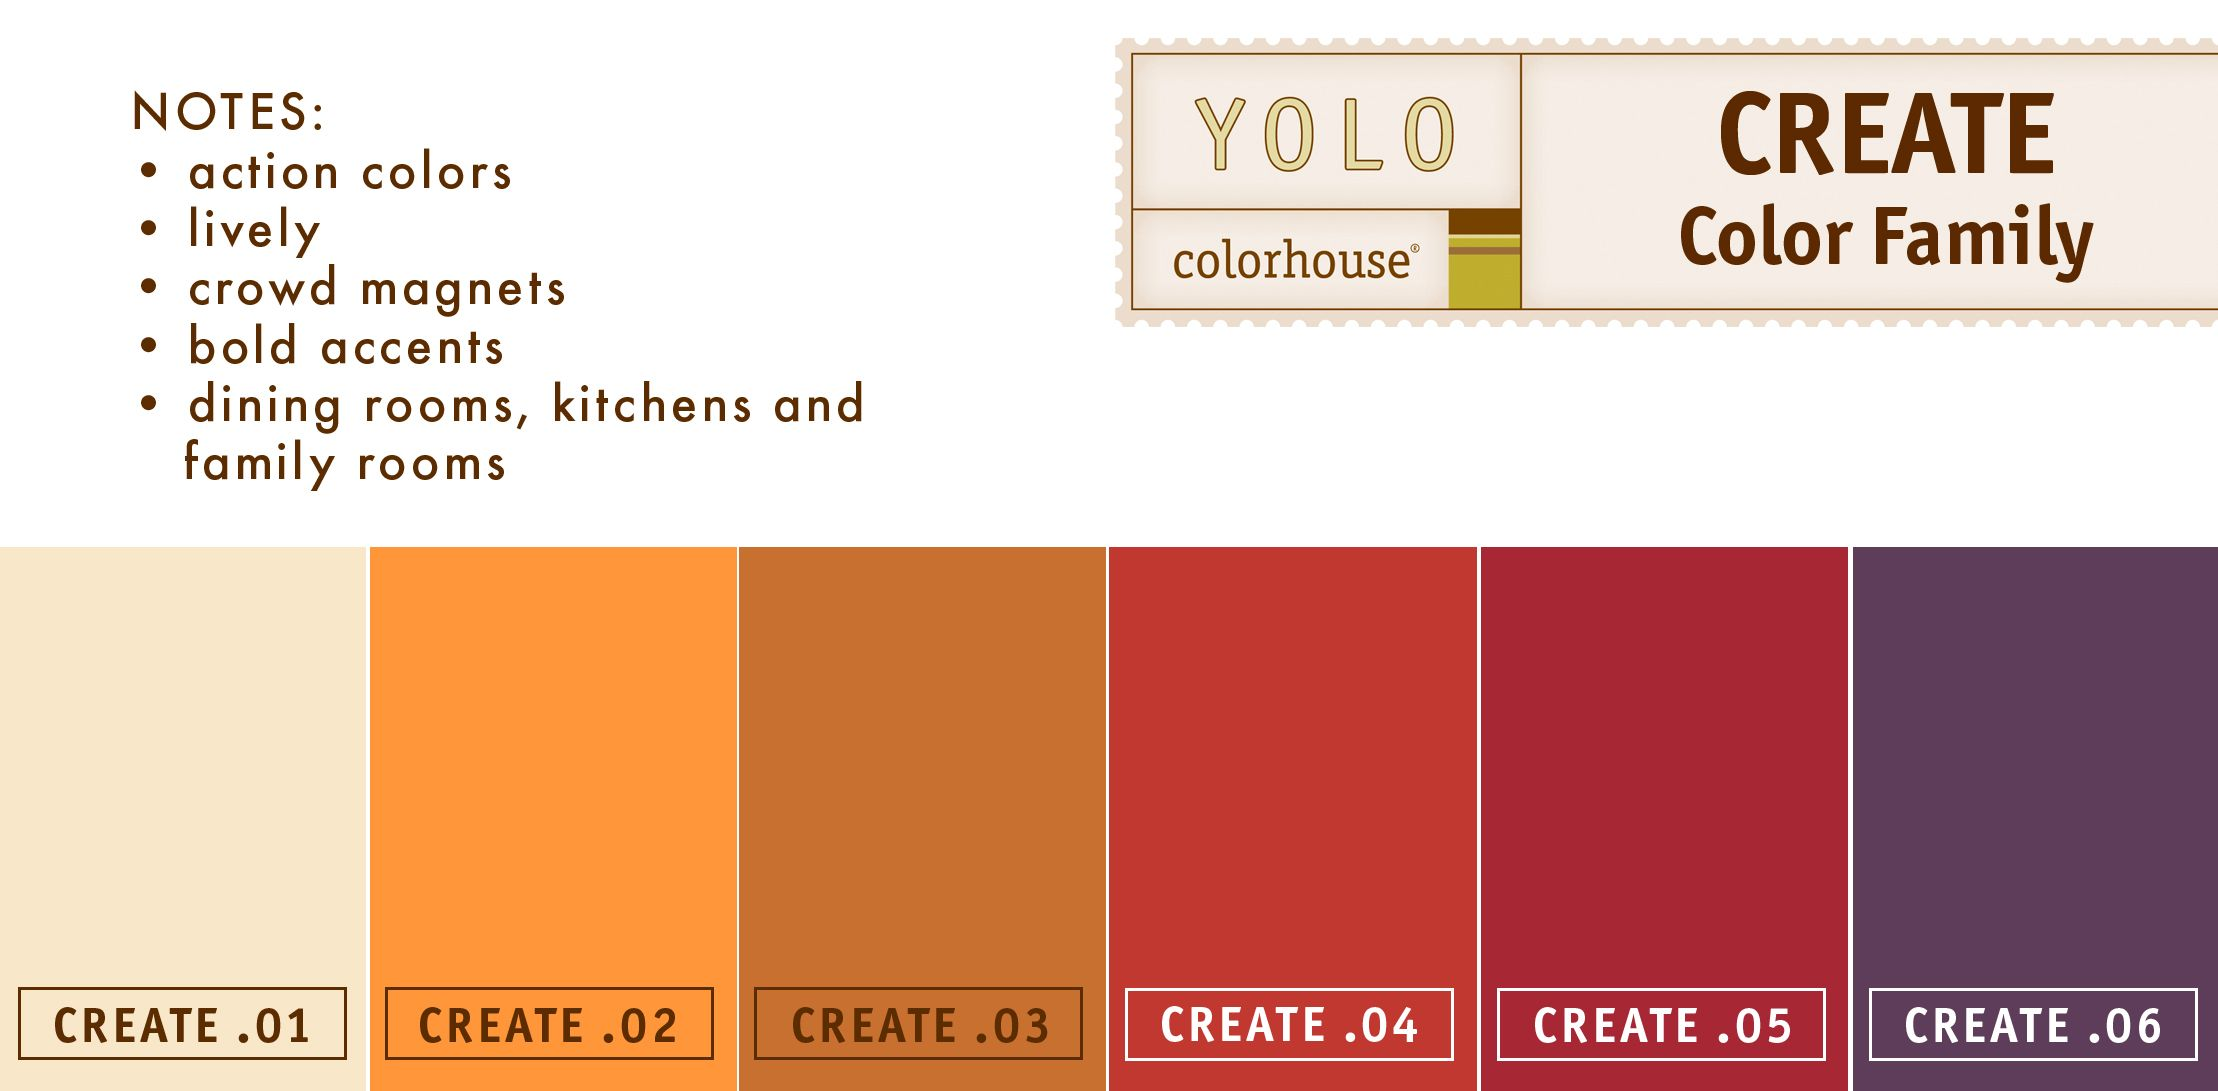 YOLO Colorhouse CREATE color family | Paint It | Pinterest | Yolo ...